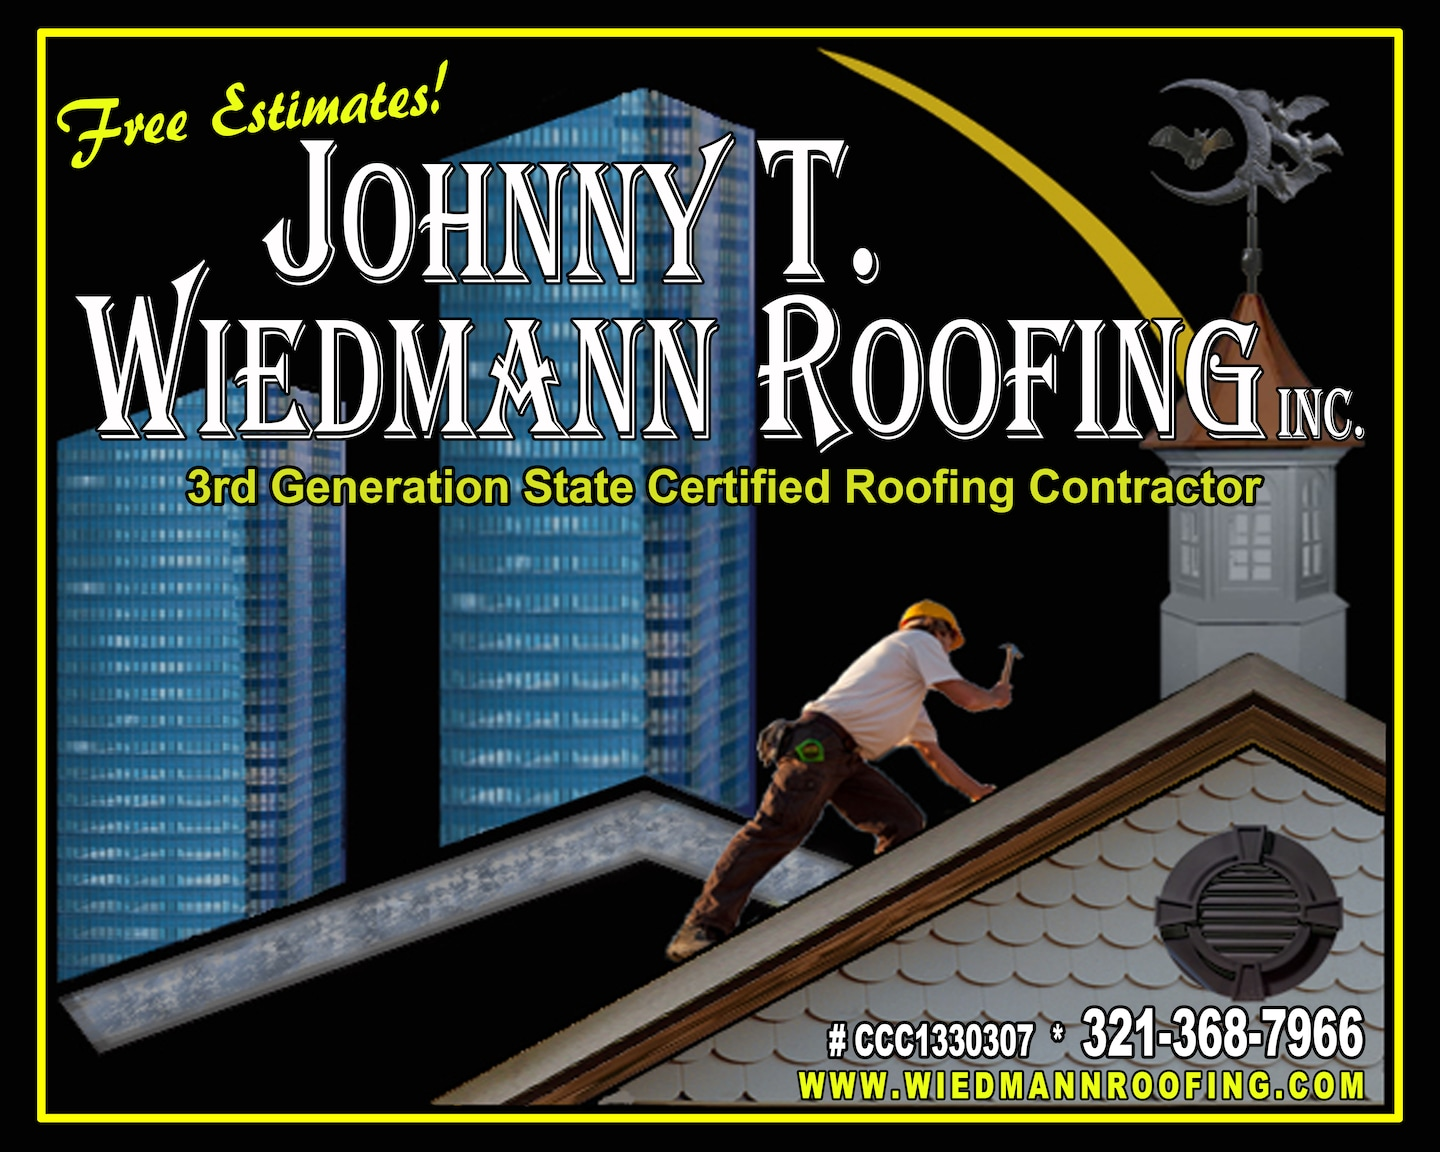 Johnny T. Wiedmann Roofing Inc.